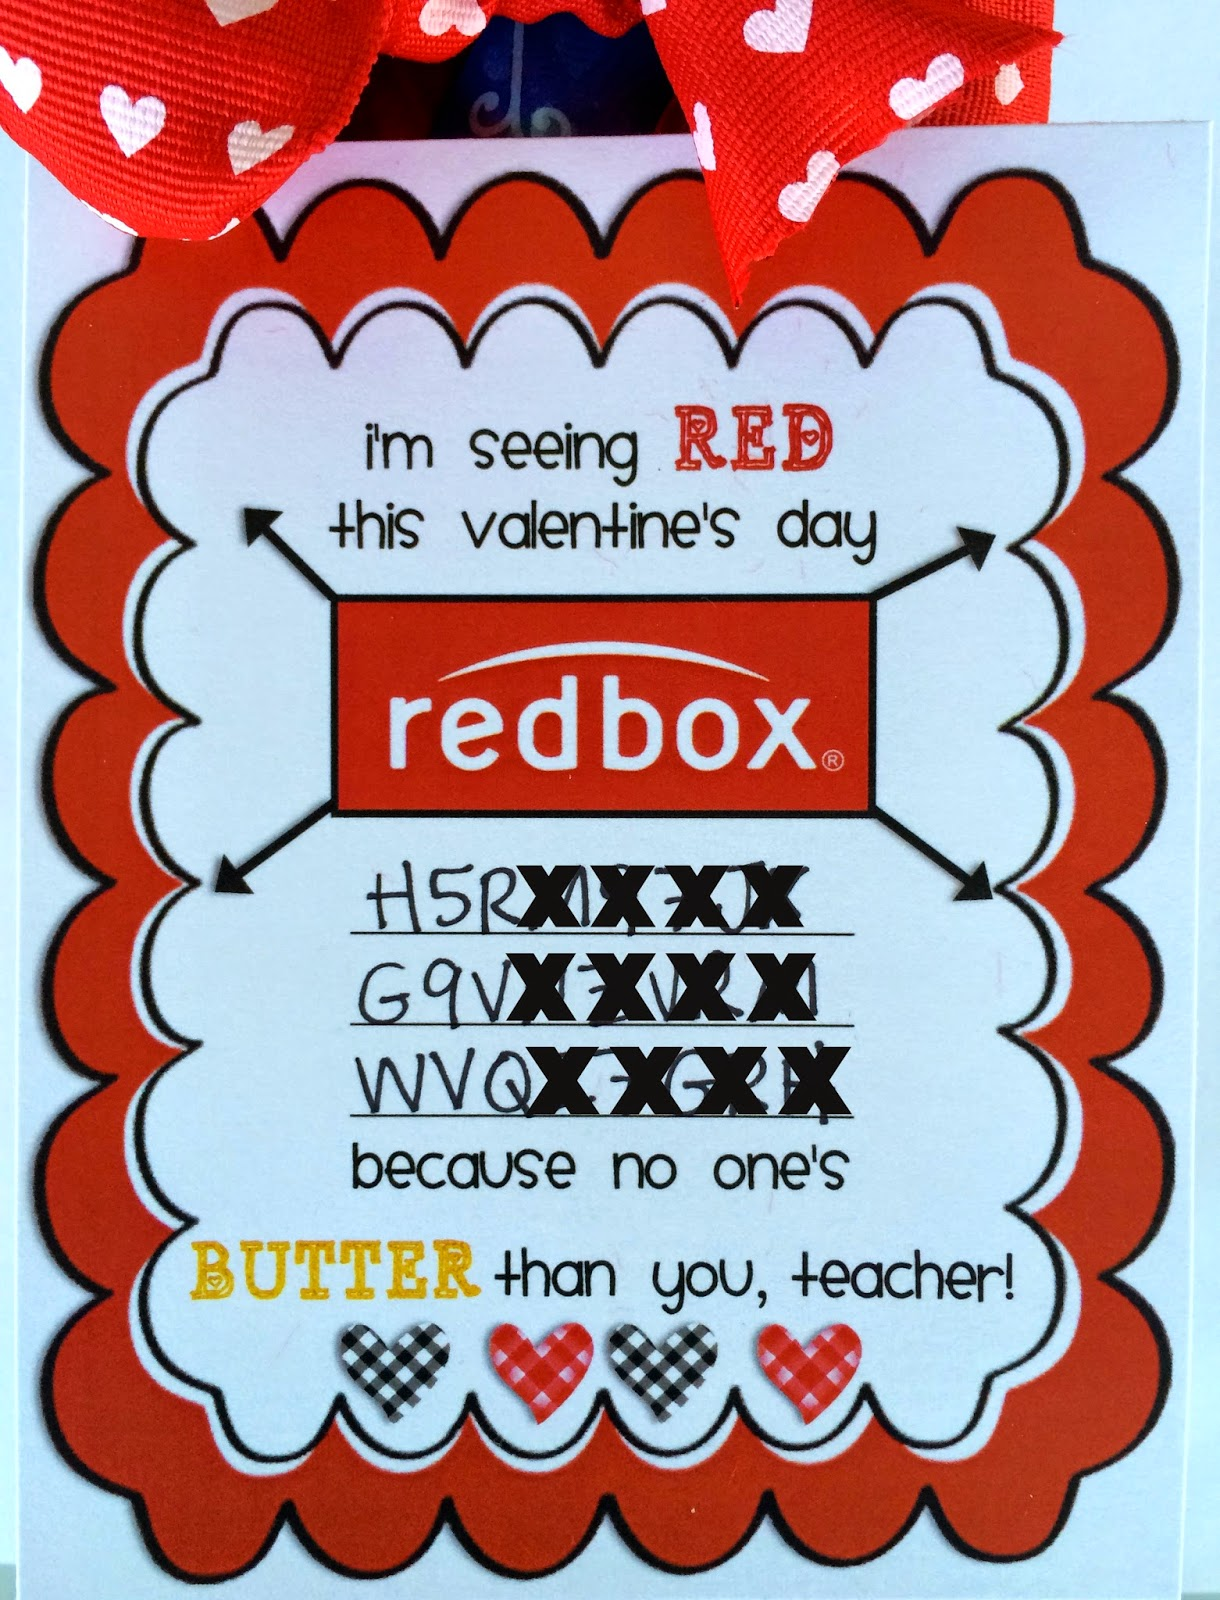 image about Teacher Valentine Printable known as Marci Coombs: Trainer Valentine Printable.